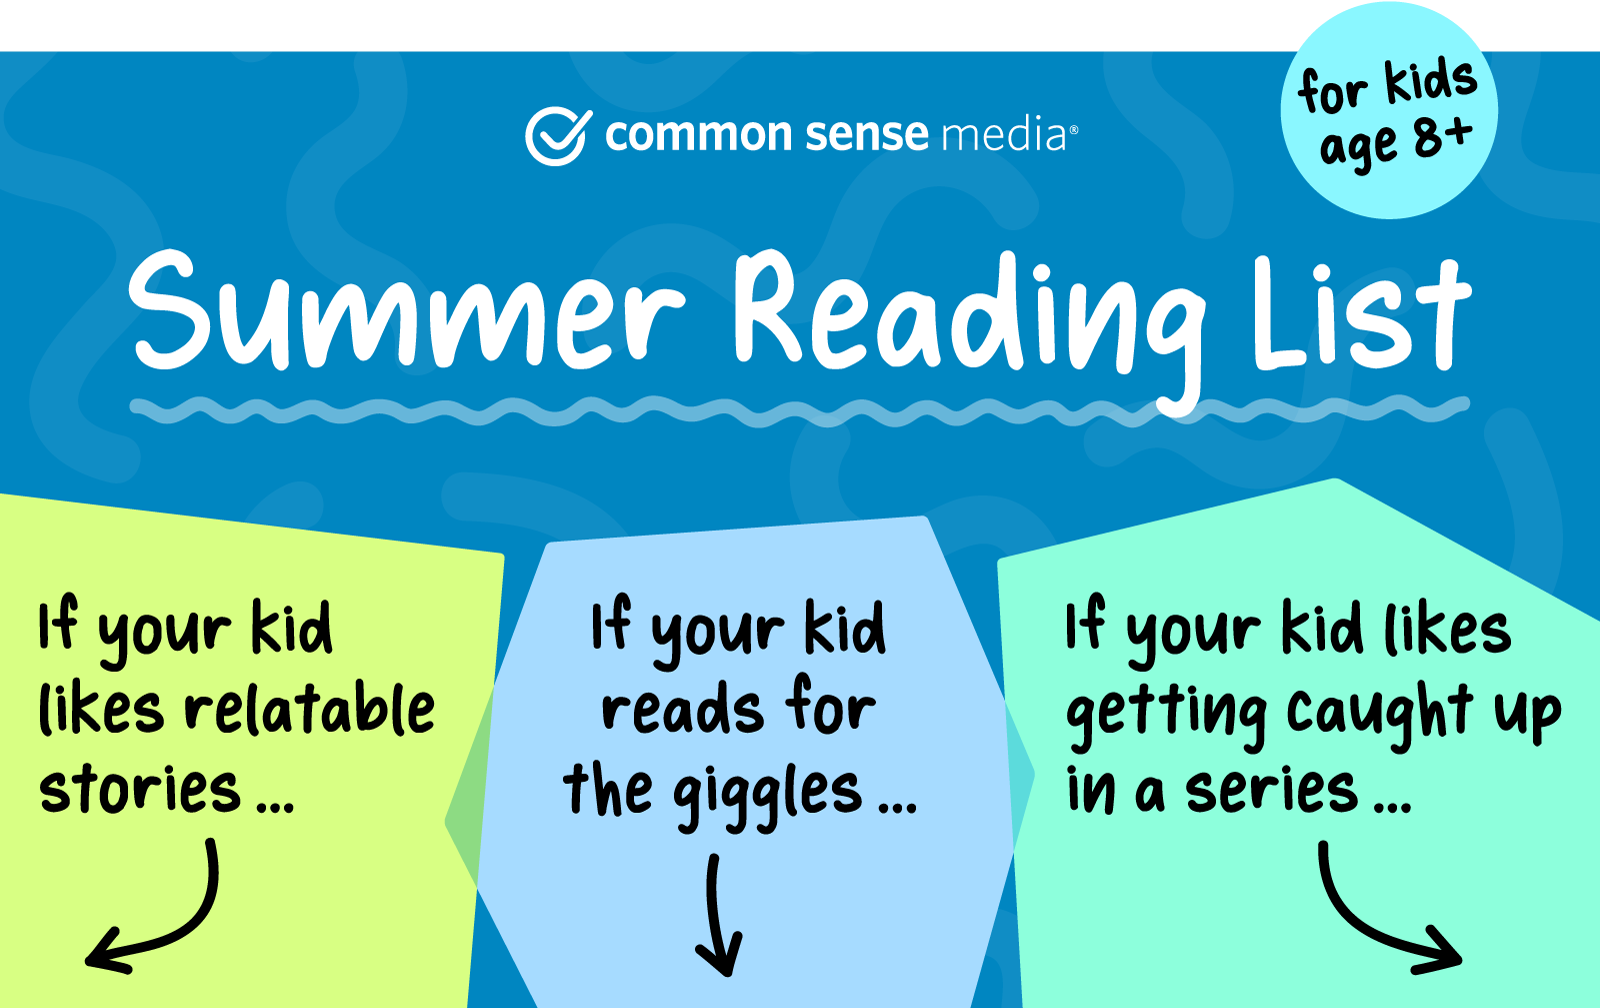 """Summer Reading List"" graphic with 3 boxes: If your kid likes relatable stories ...; If your kid reads for the giggles ...; If your kid likes getting caught up in a series ..."